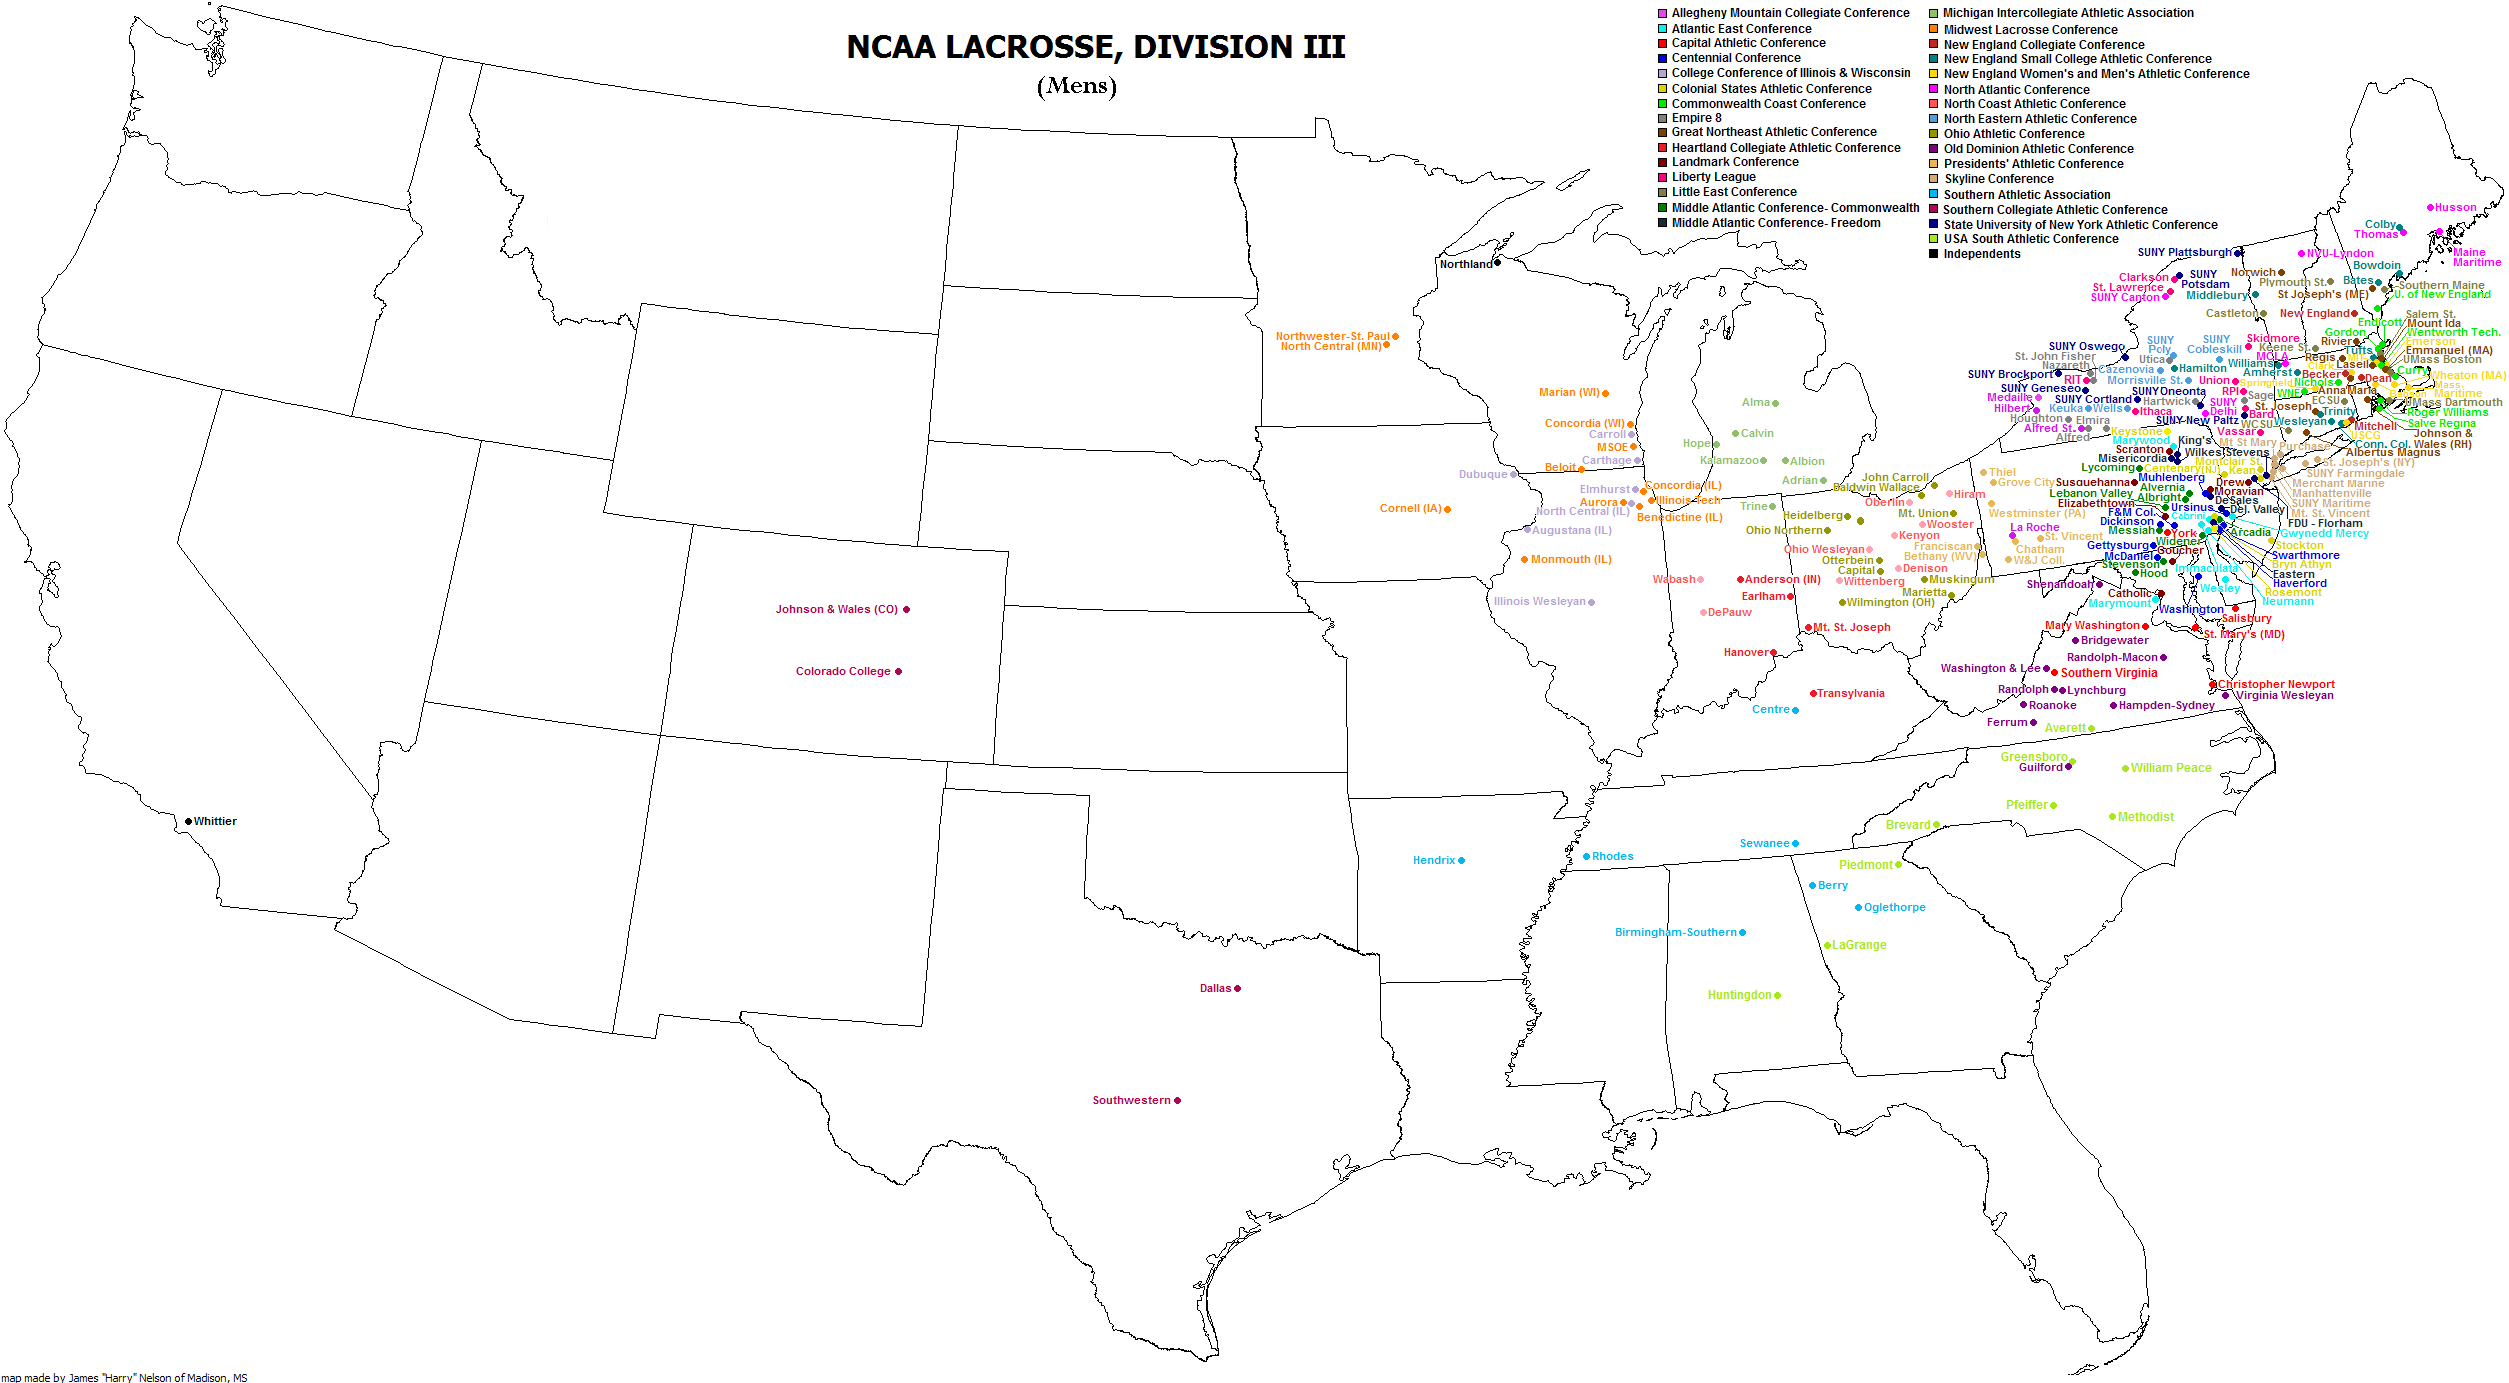 File:NCAA Division III men\'s lacrosse map.png - Wikimedia Commons